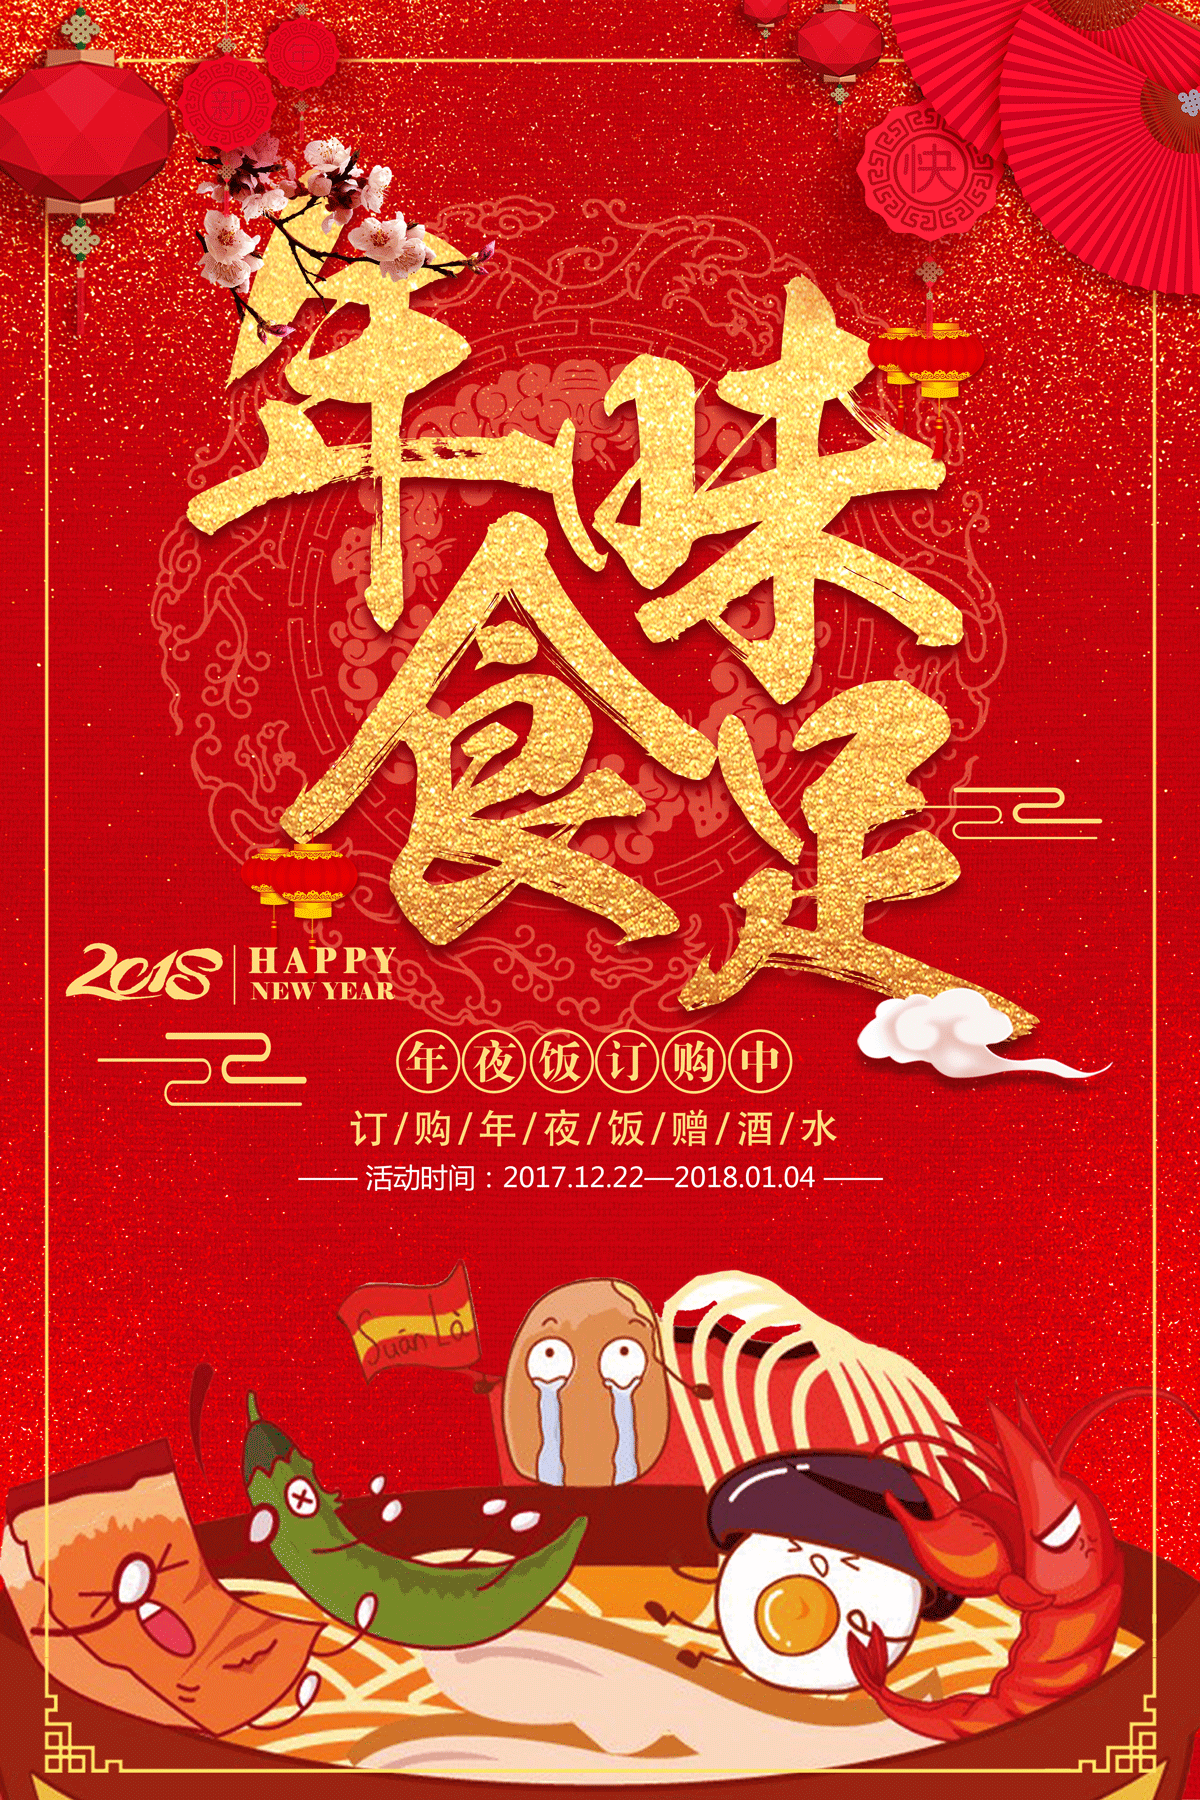 chinesefontdesign.com 2018 02 13 08 51 35 142553 Poster design for Chinese restaurant at new years party China PSD File Free Download tangyuan psd Lantern festival posters Lantern Festival happy lantern festival Chinese wind